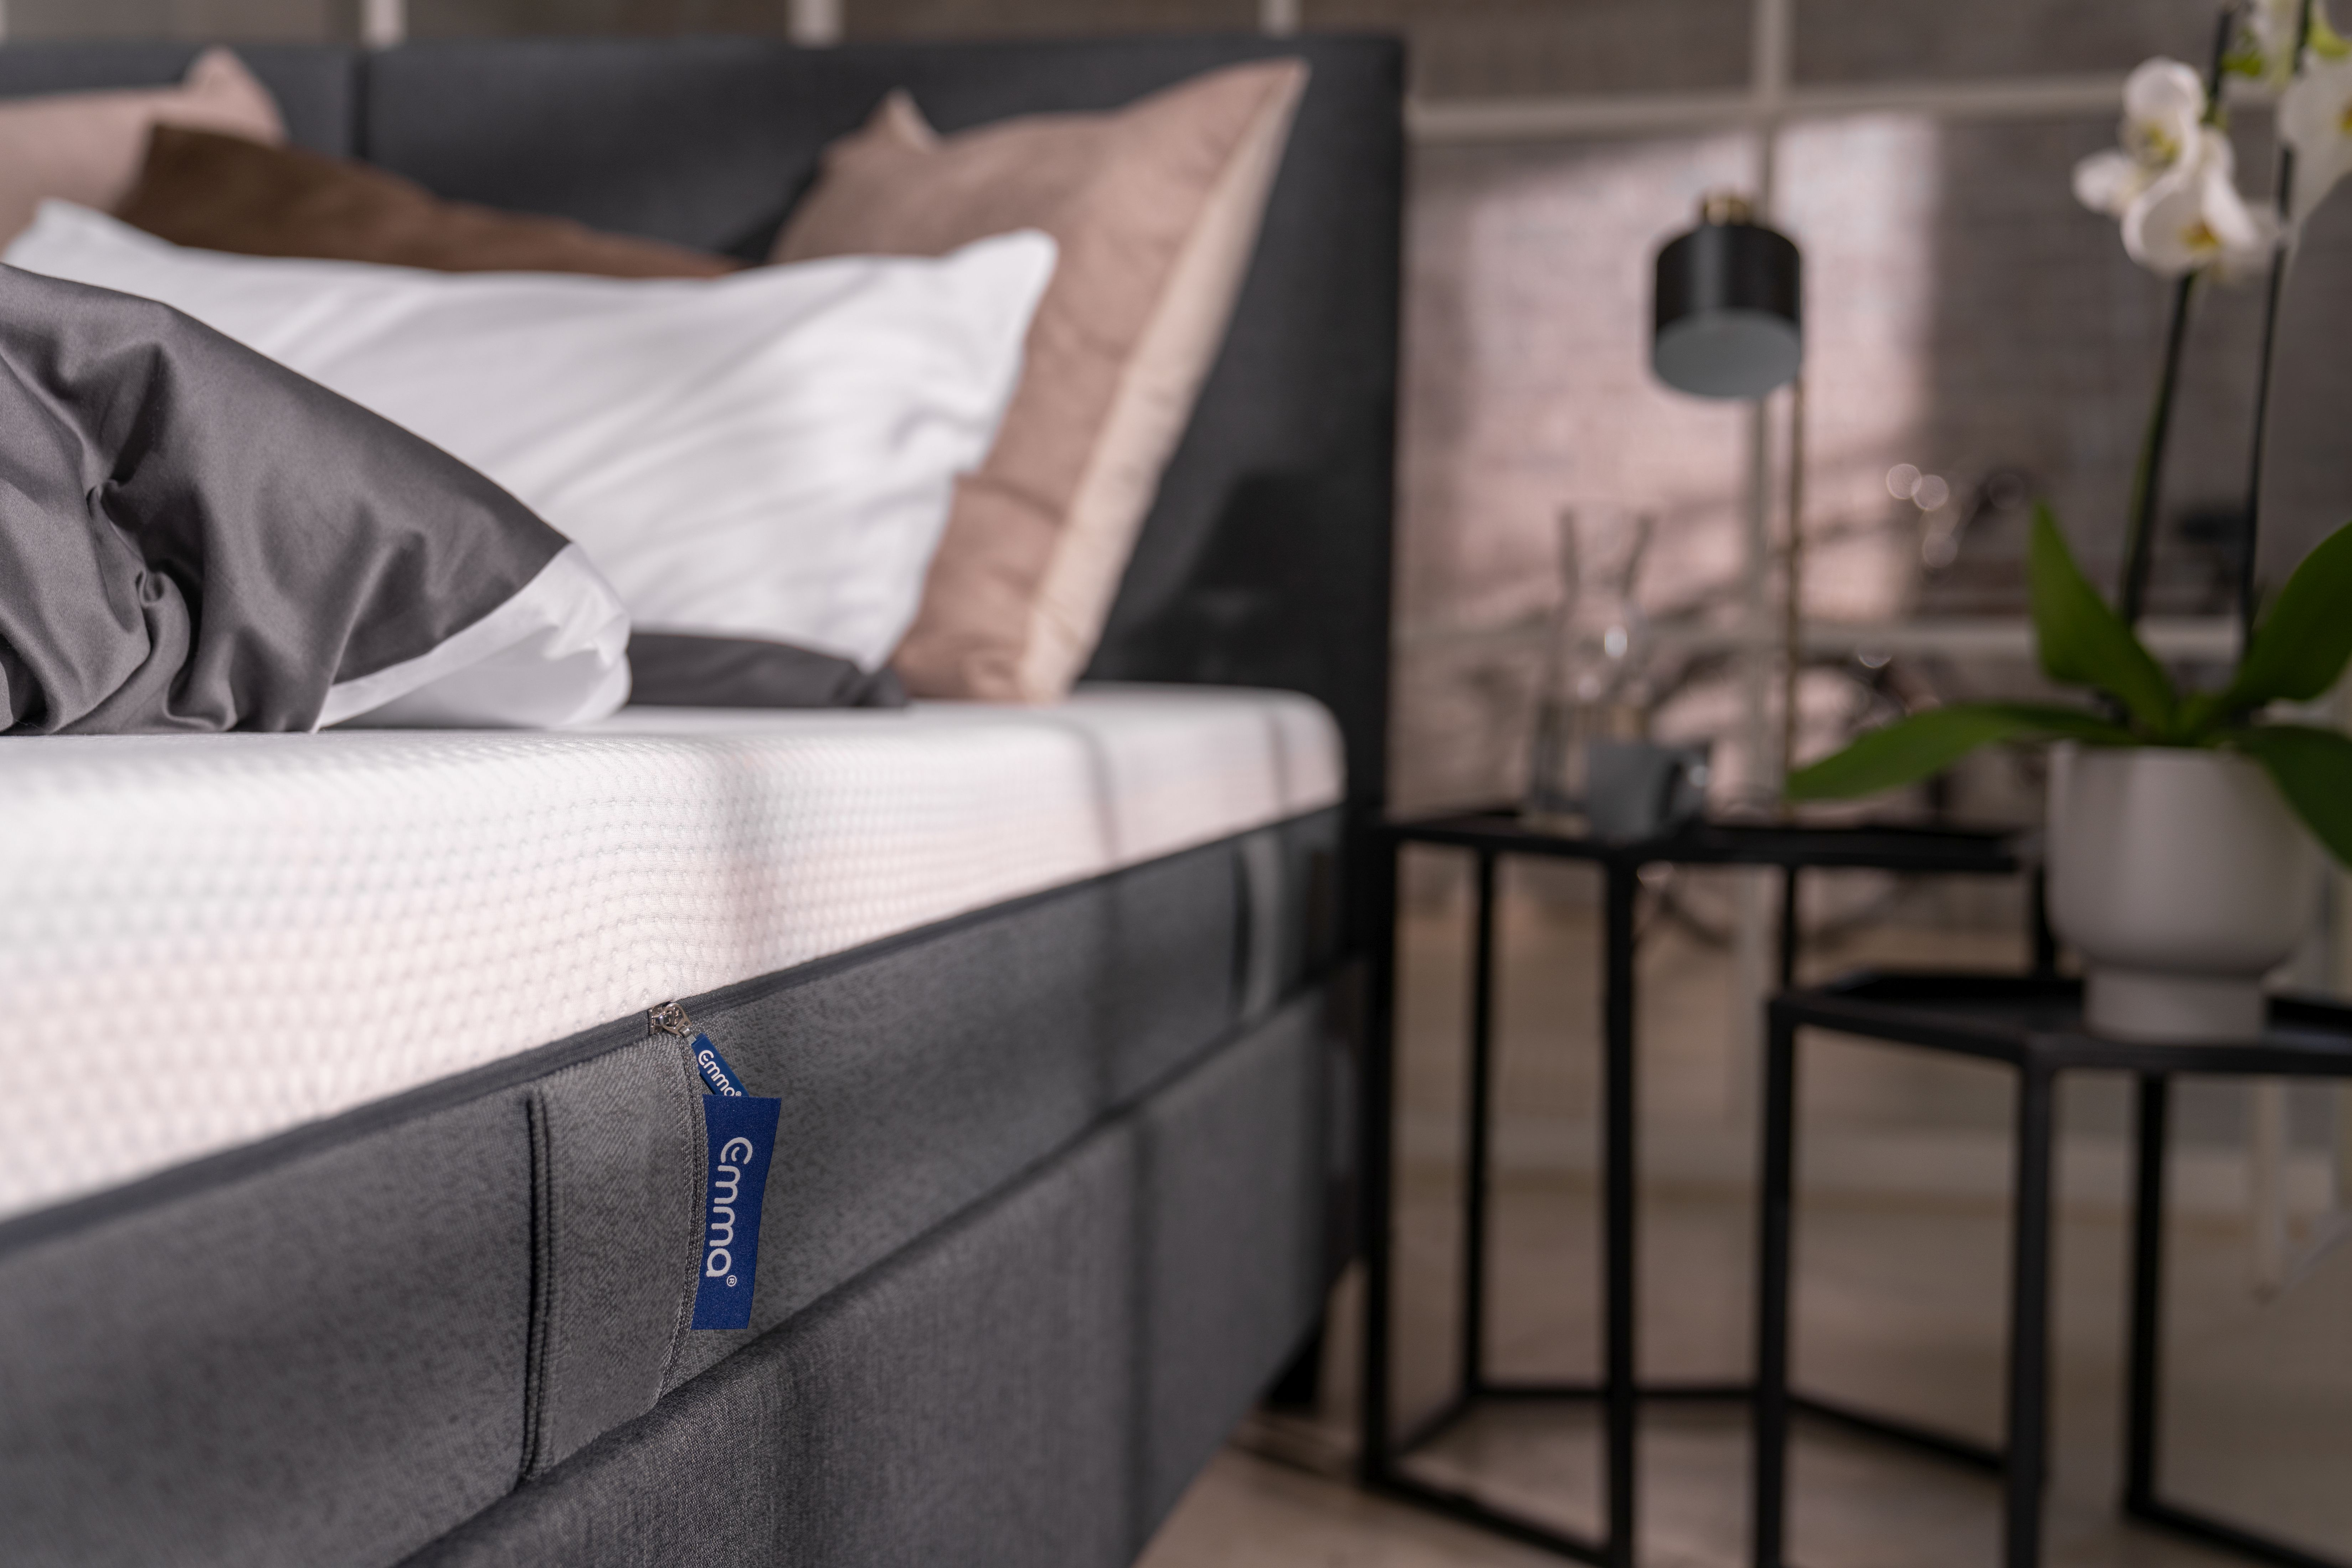 Boxed mattresses: the best mattresses in a box 2021, from Emma, Simba, Nectar and more